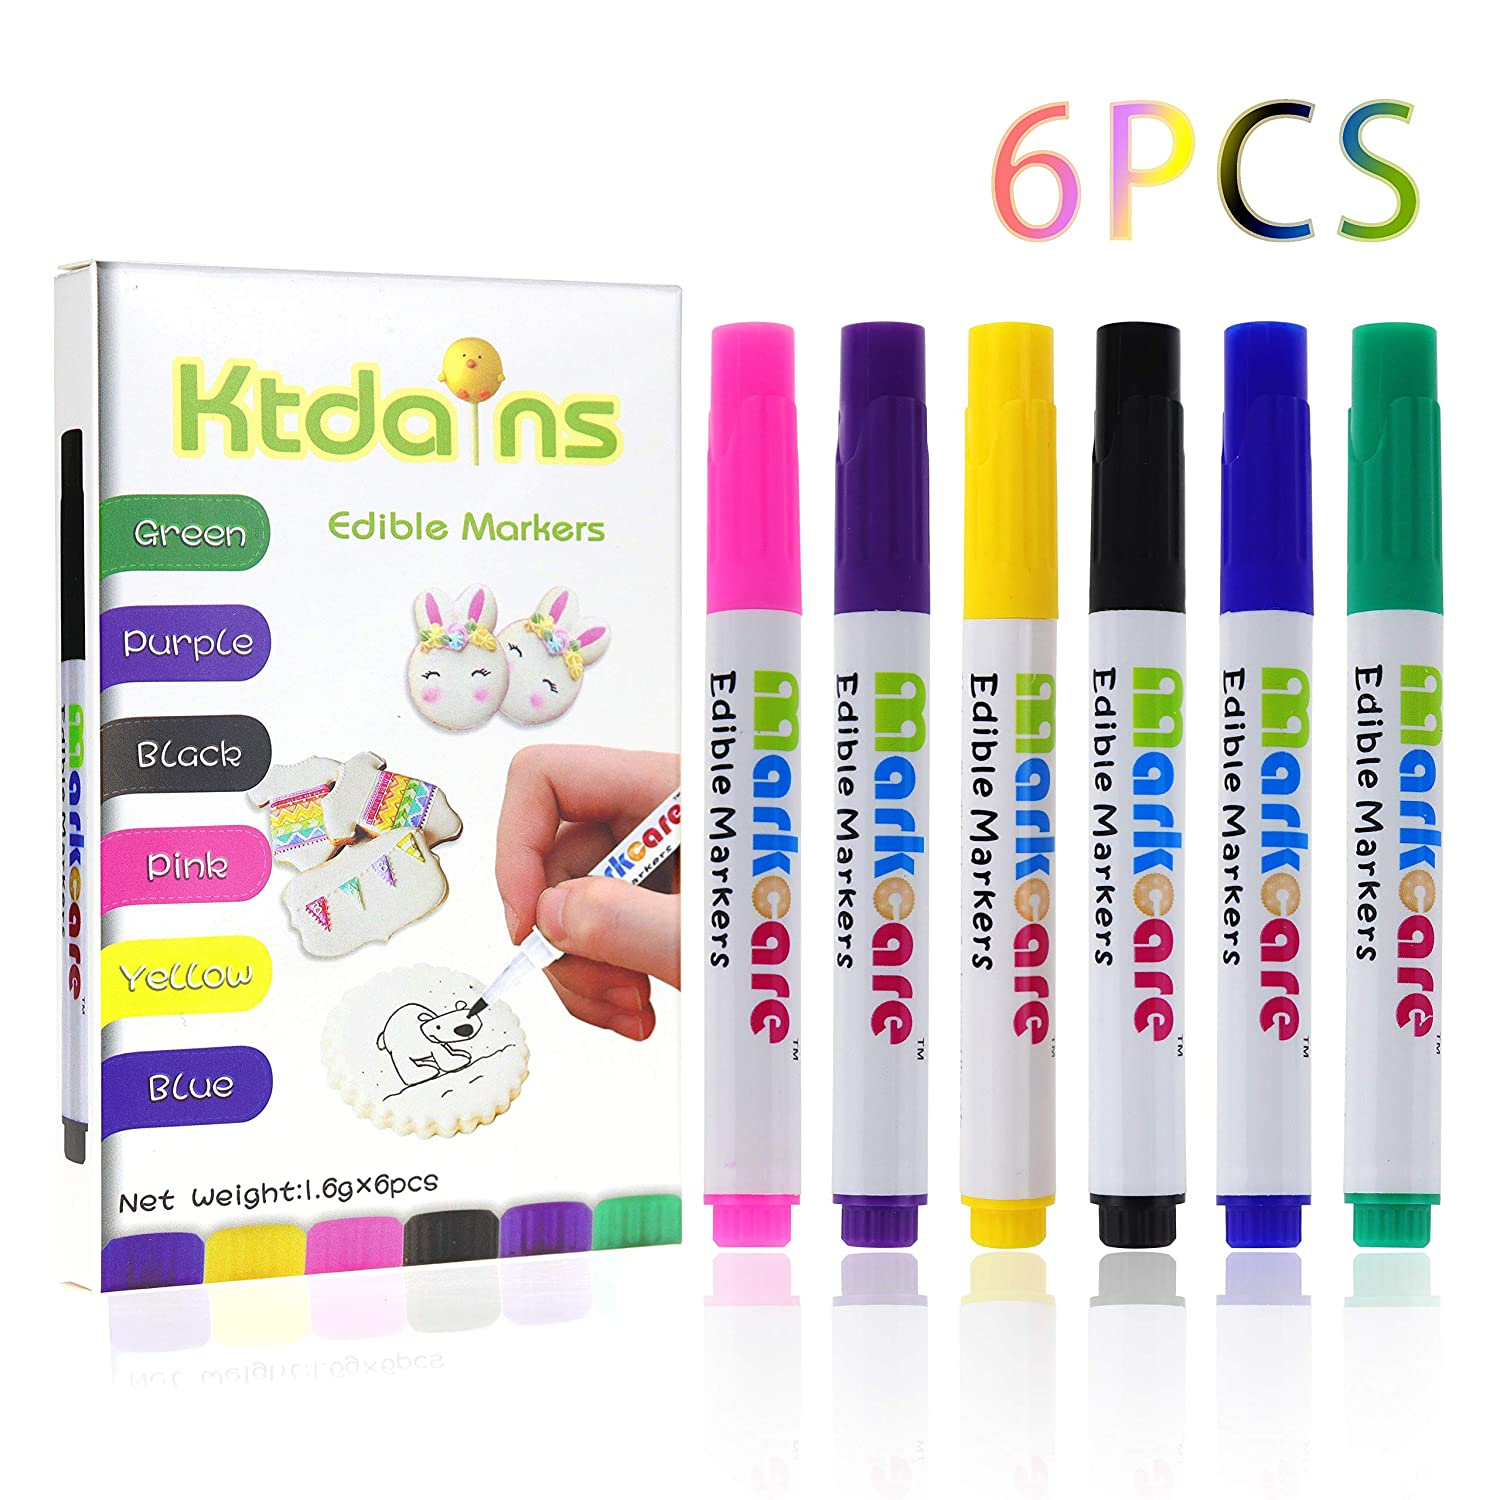 Edible Markers,Food Coloring Markers,Food coloring Pens,6 Colors Food Grade pen,Thick Tip and Fine Tip , Gourmet Writers for Decorating Fondant,Cakes, Cookies, Frosting, Easter Eggs